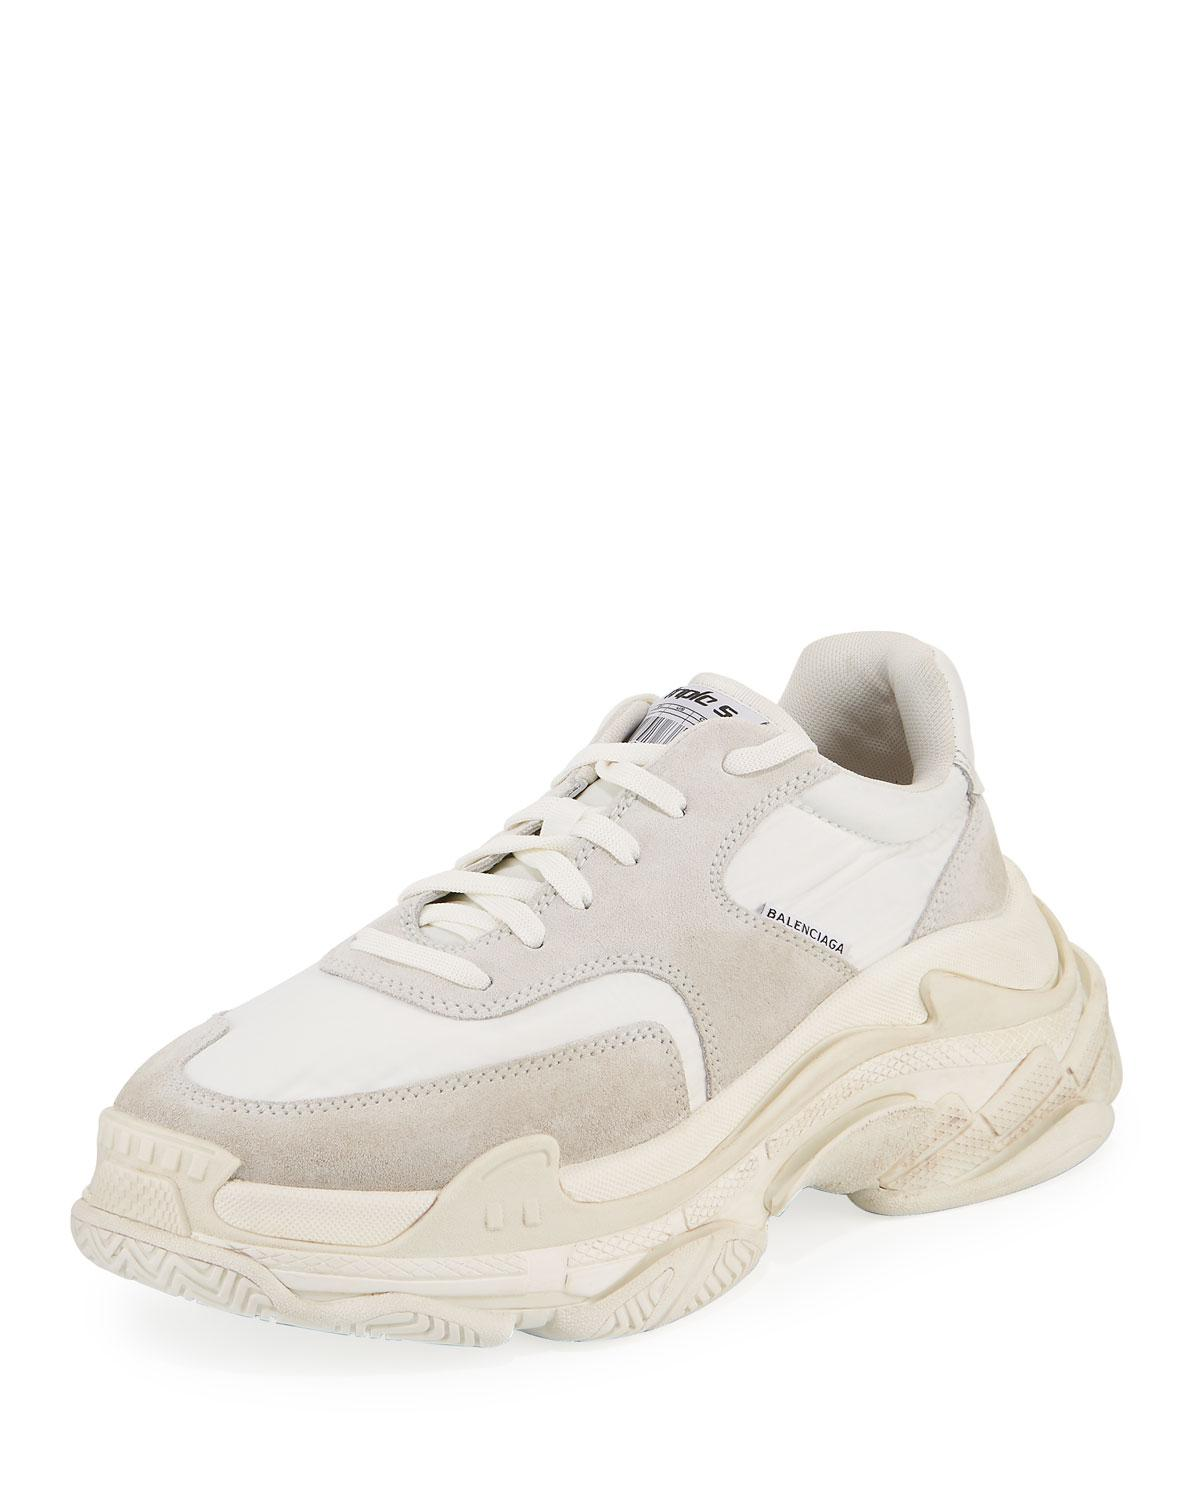 57d432182eb5 Lyst - Balenciaga Men s Triple S Nylon Sneakers in White for Men ...